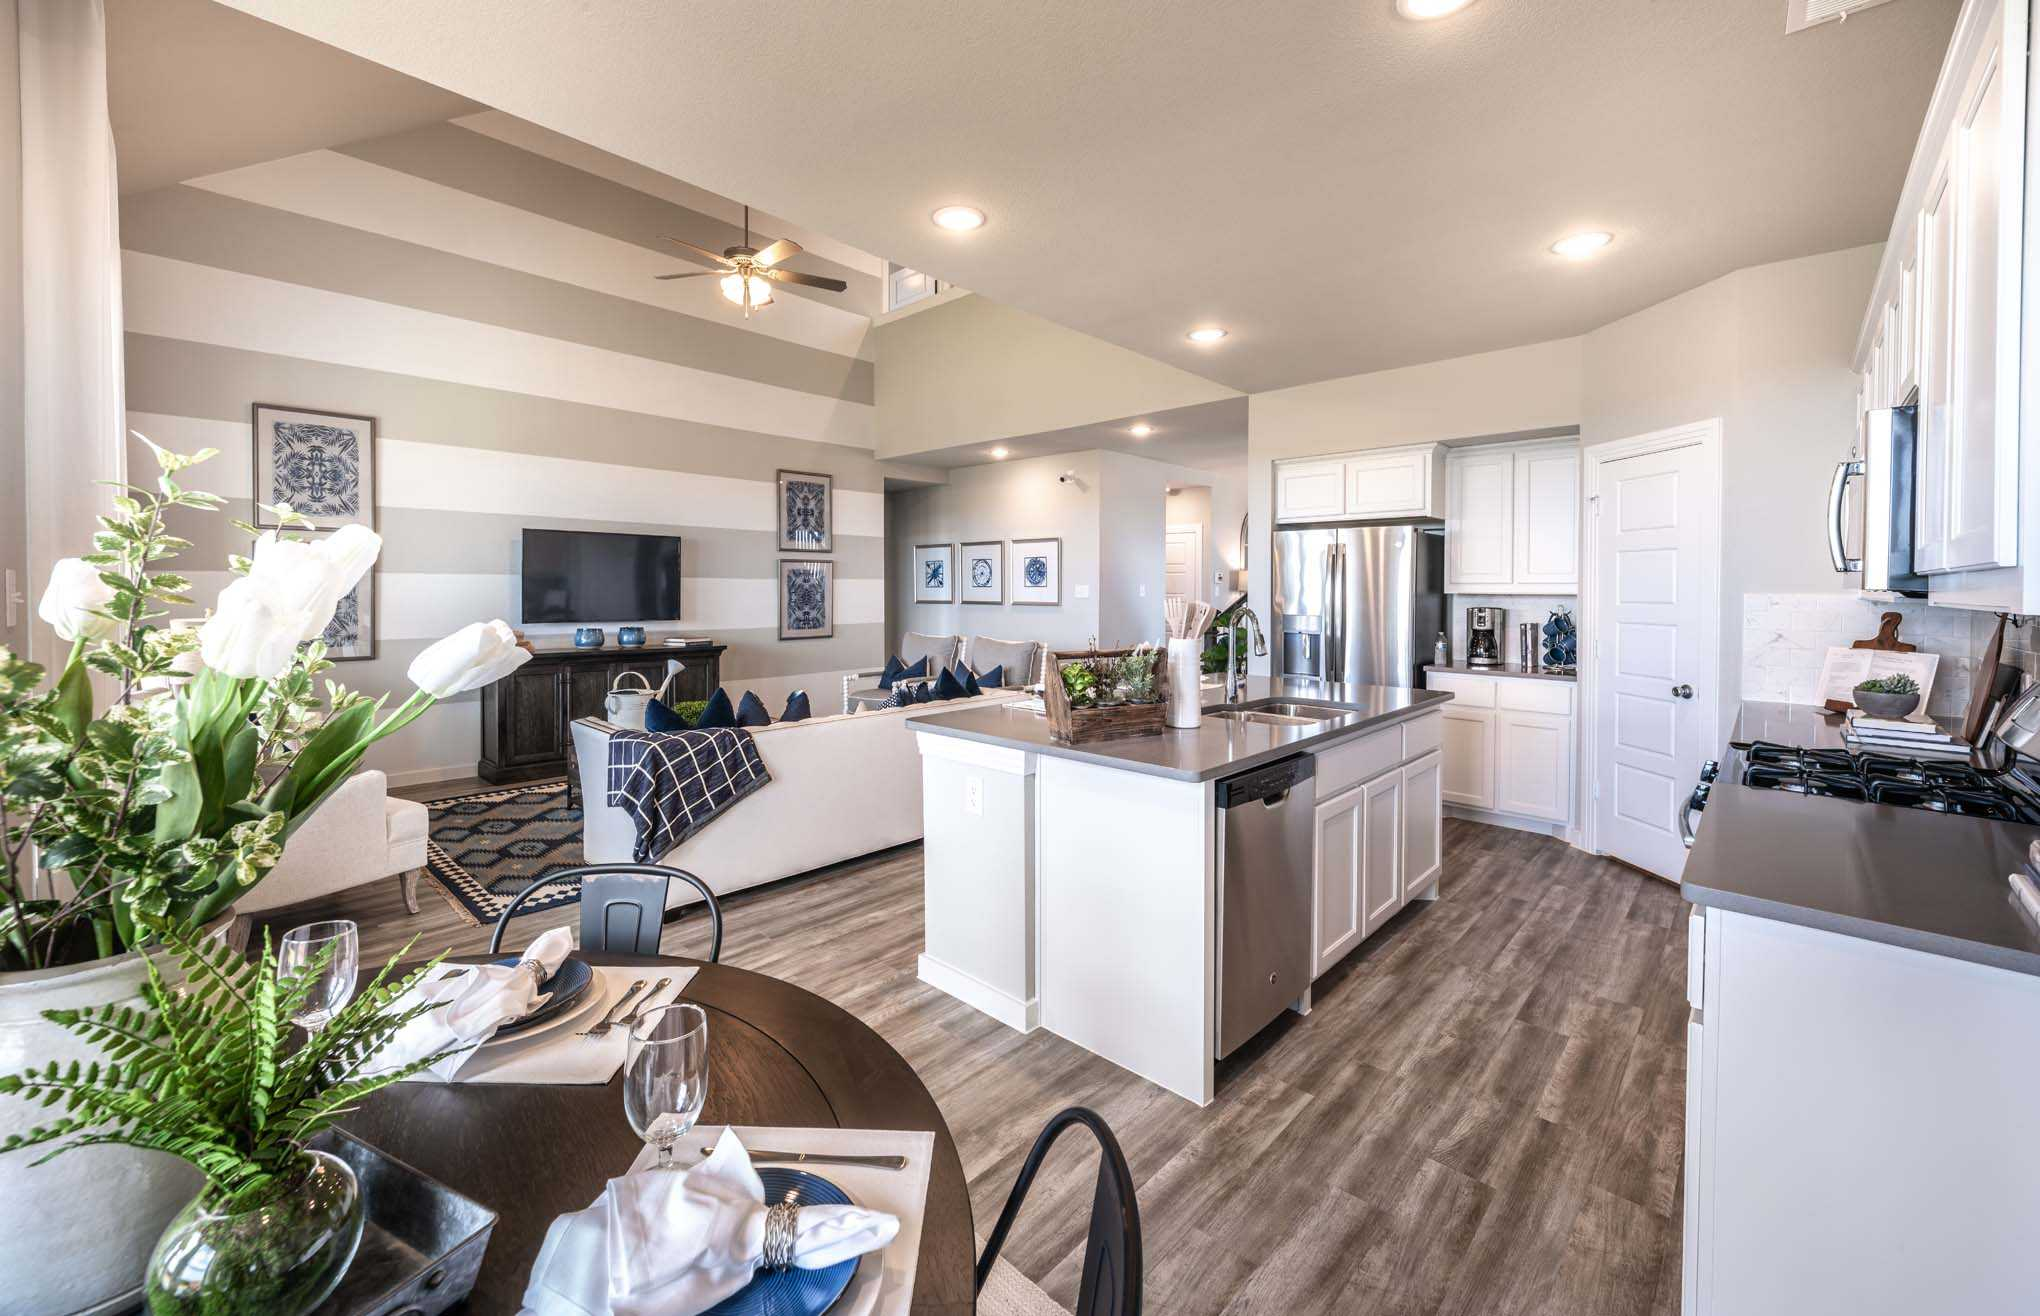 Model Home in Dallas / Fort Worth Texas, Waterscape community